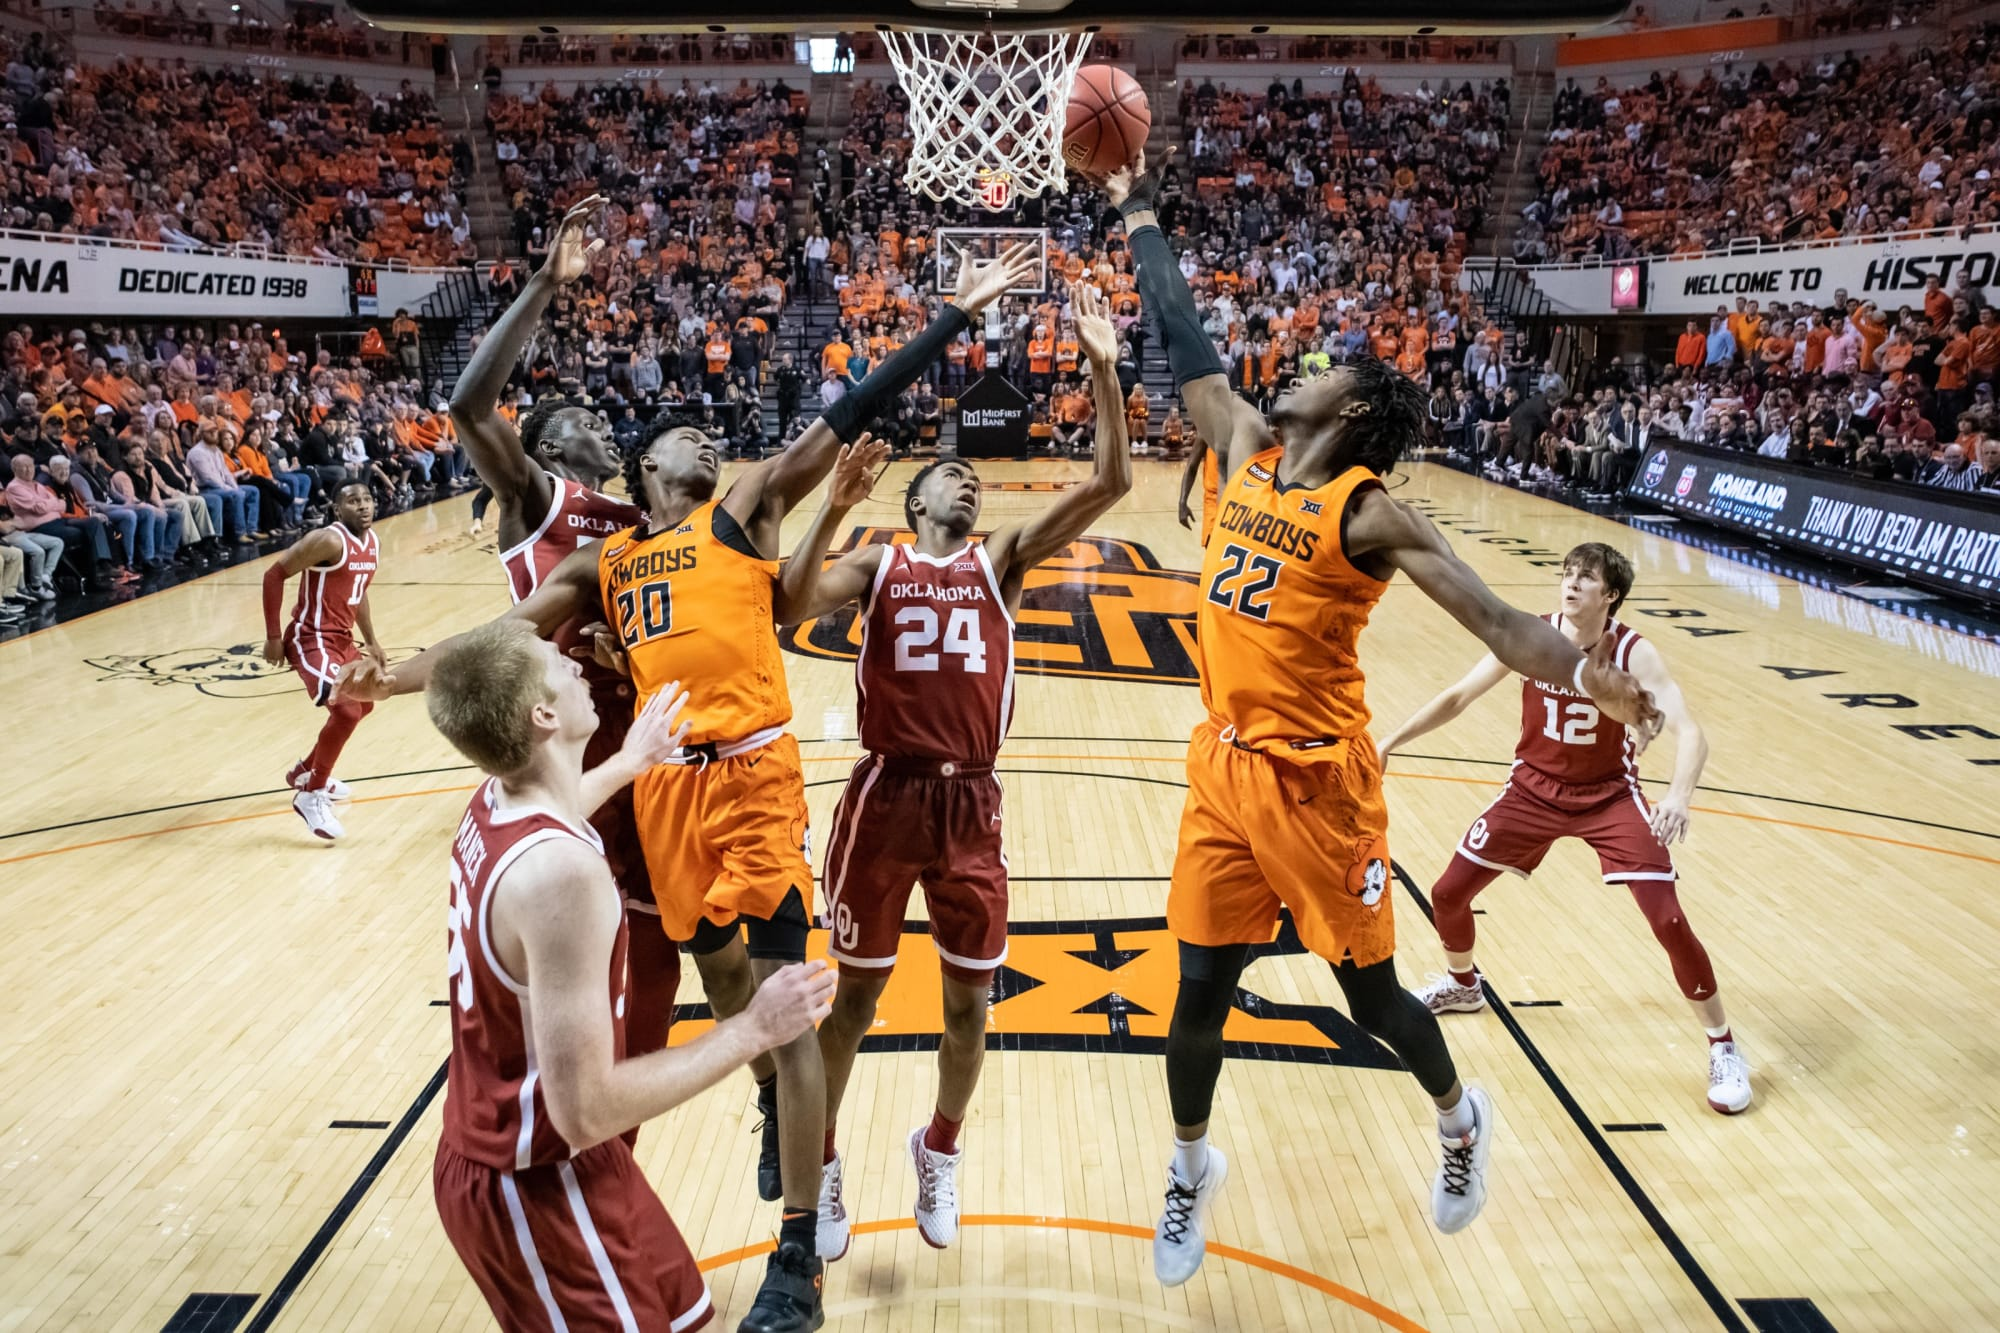 Oklahoma basketball: More than bragging rights on line in Bedlam